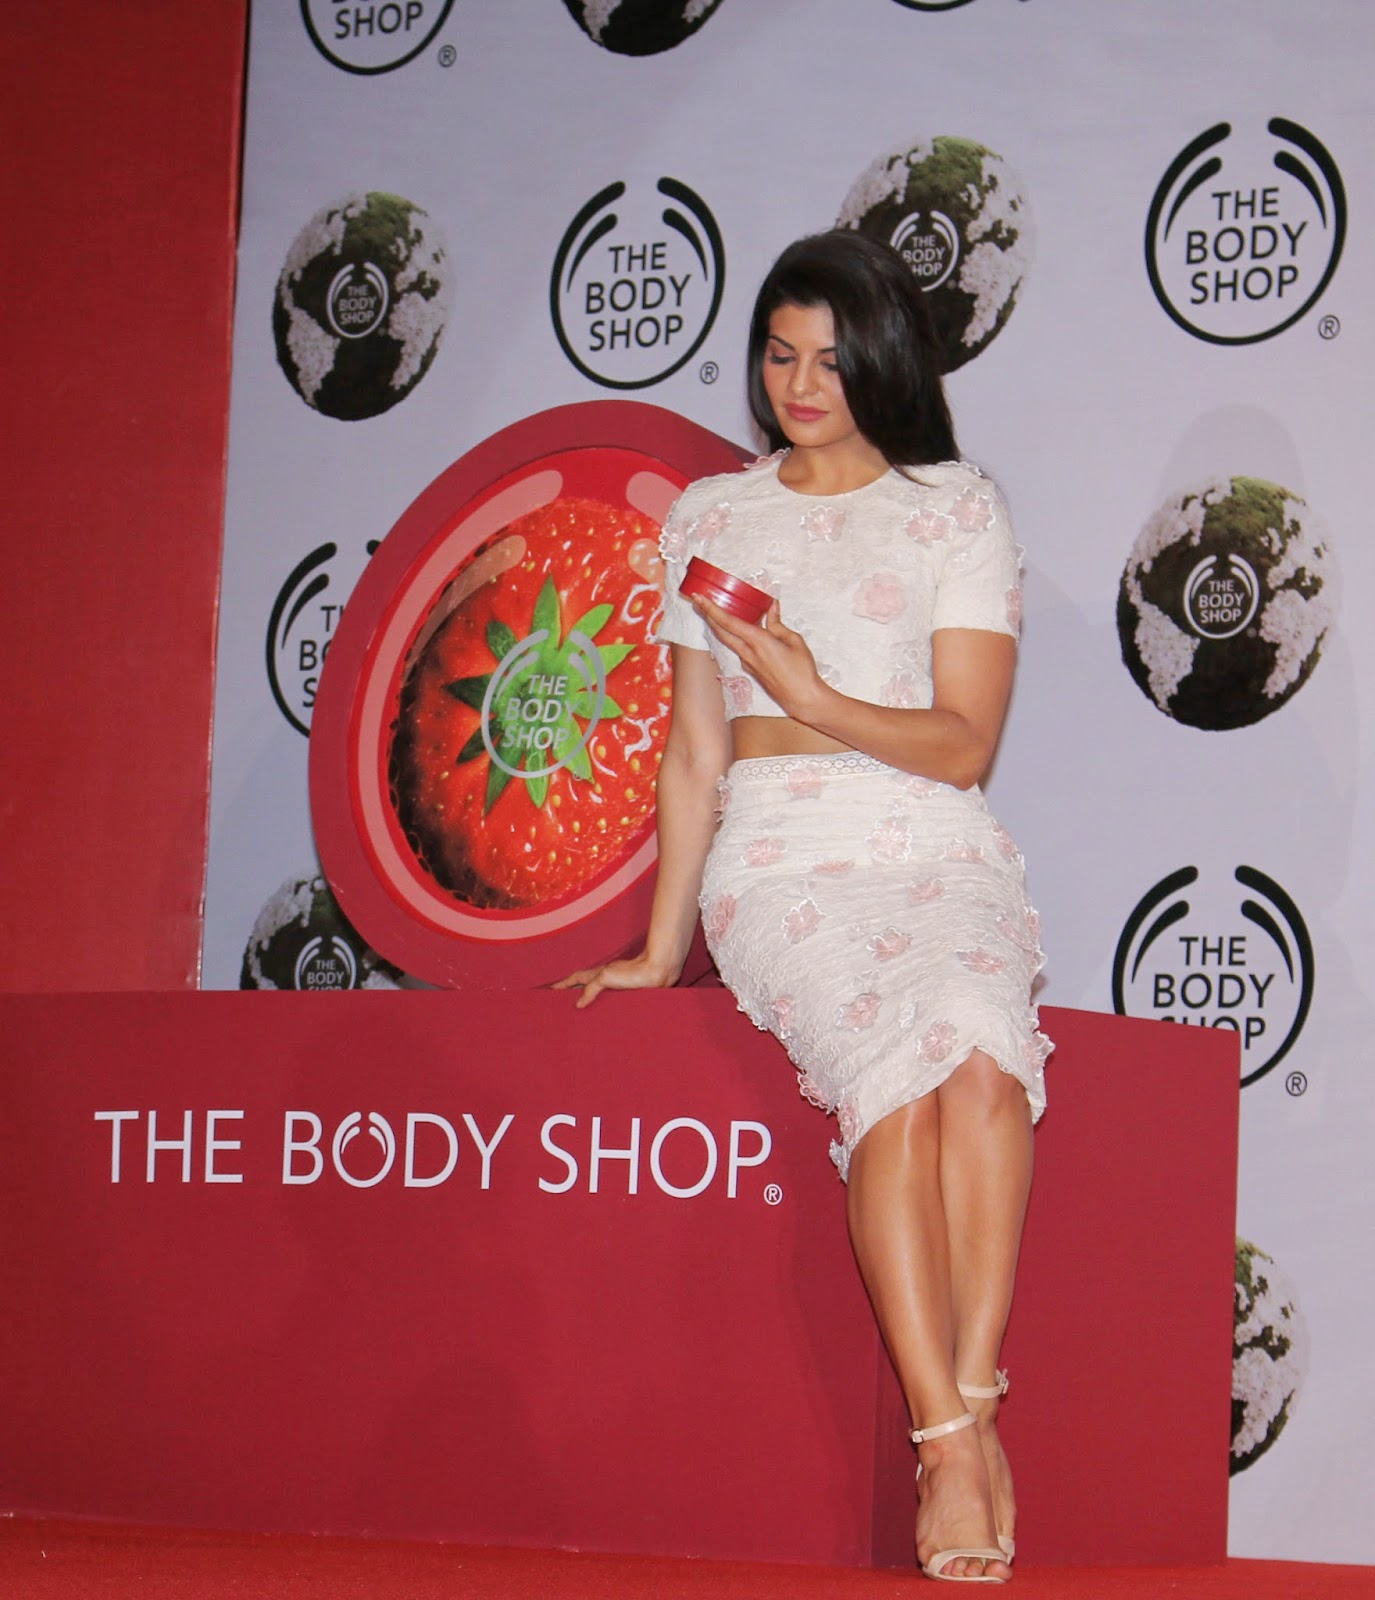 body shop the brand The body shop has faced increasing competition from other brands offering similar products based on natural ingredients with no animal testing.